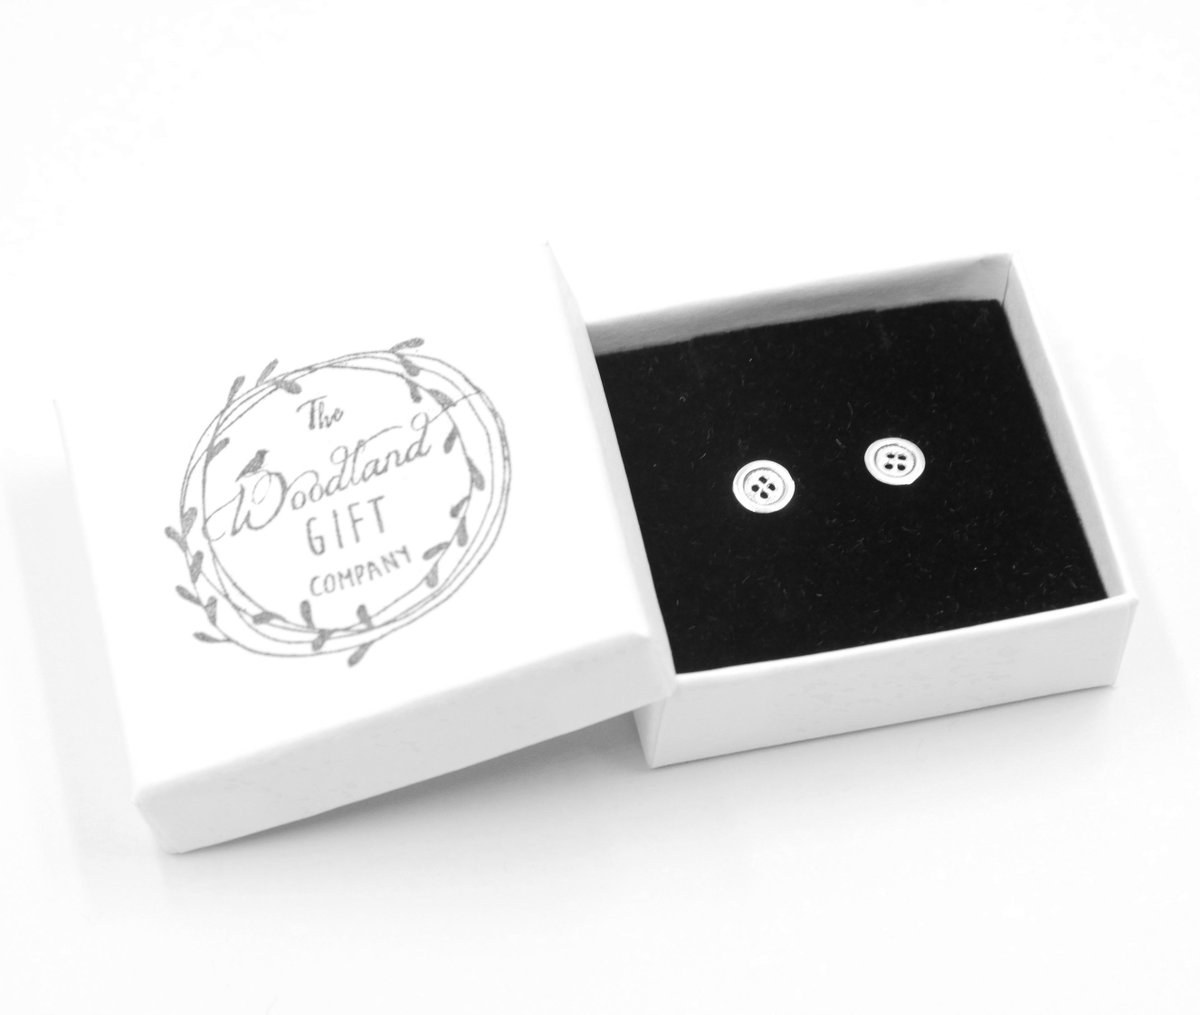 96aaad4ec Shop here:  https://www.thewoodlandgiftcompany.com/925-sterling-silver-stud-earrings …  #cuteasabutton #SewingBee #giftideas #giftsforher #UKGiftHour ...